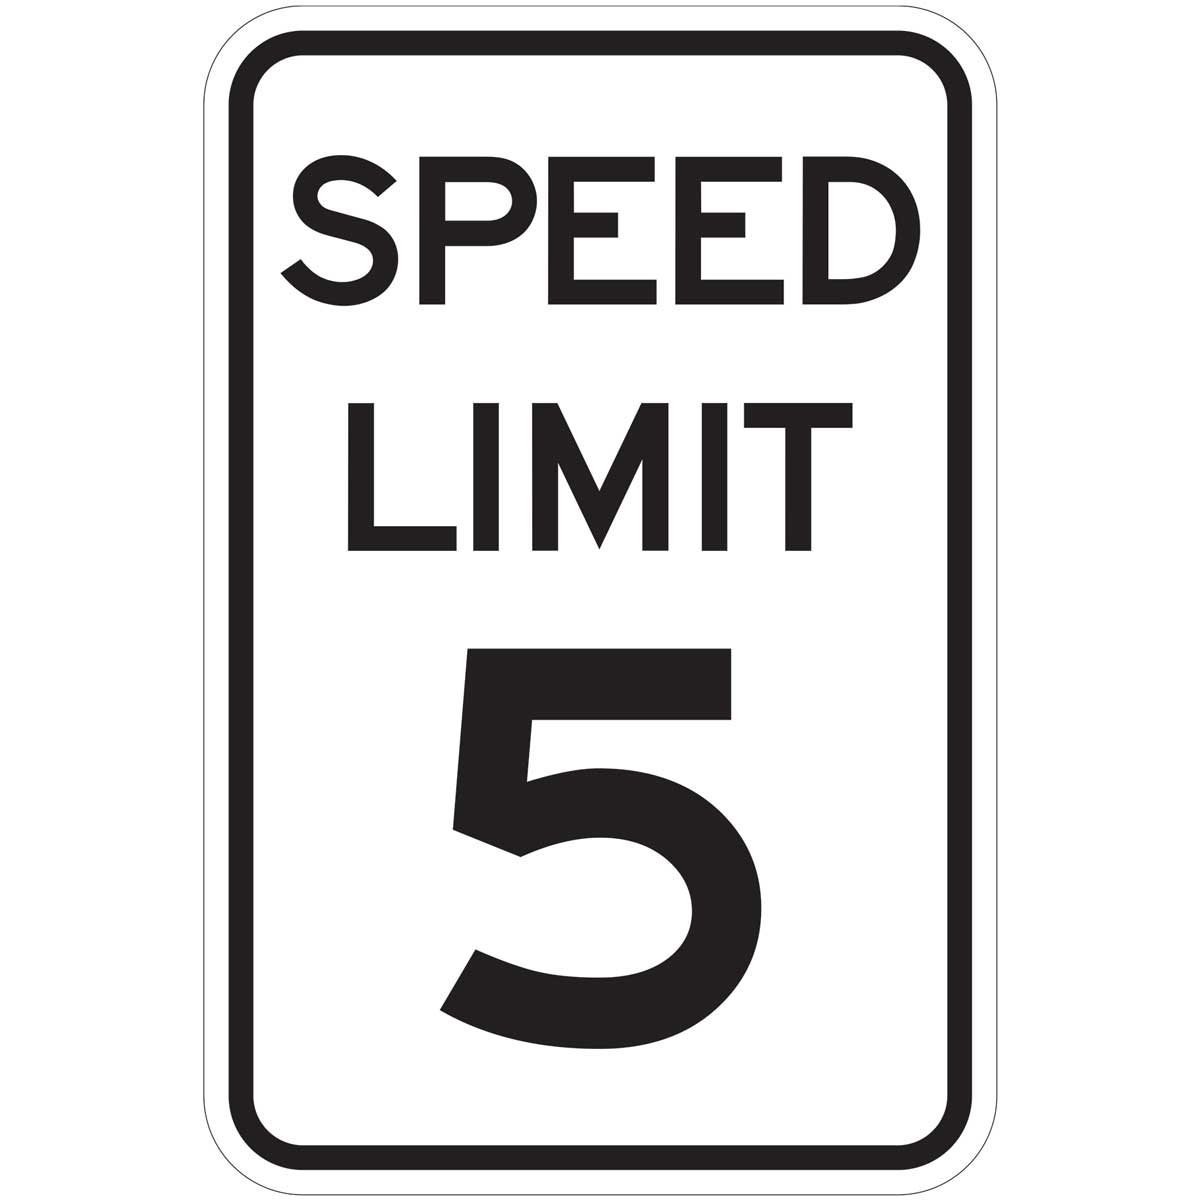 """Speed Limit 5"" Aluminum Traffic Control Speed Limit Sign"